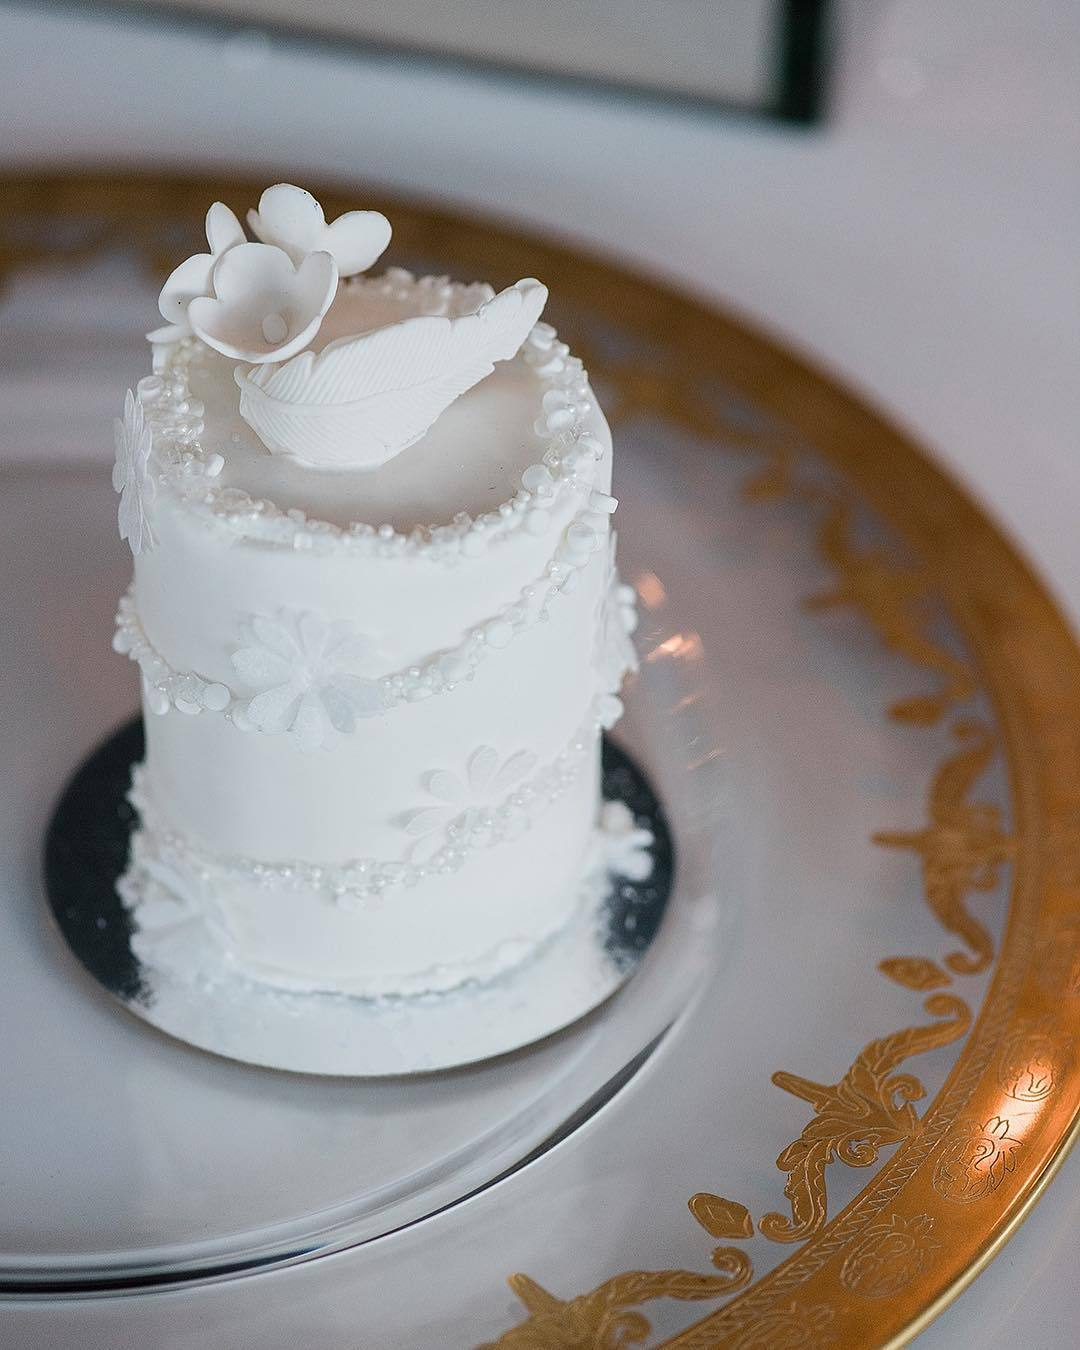 White on white textured fondant cake